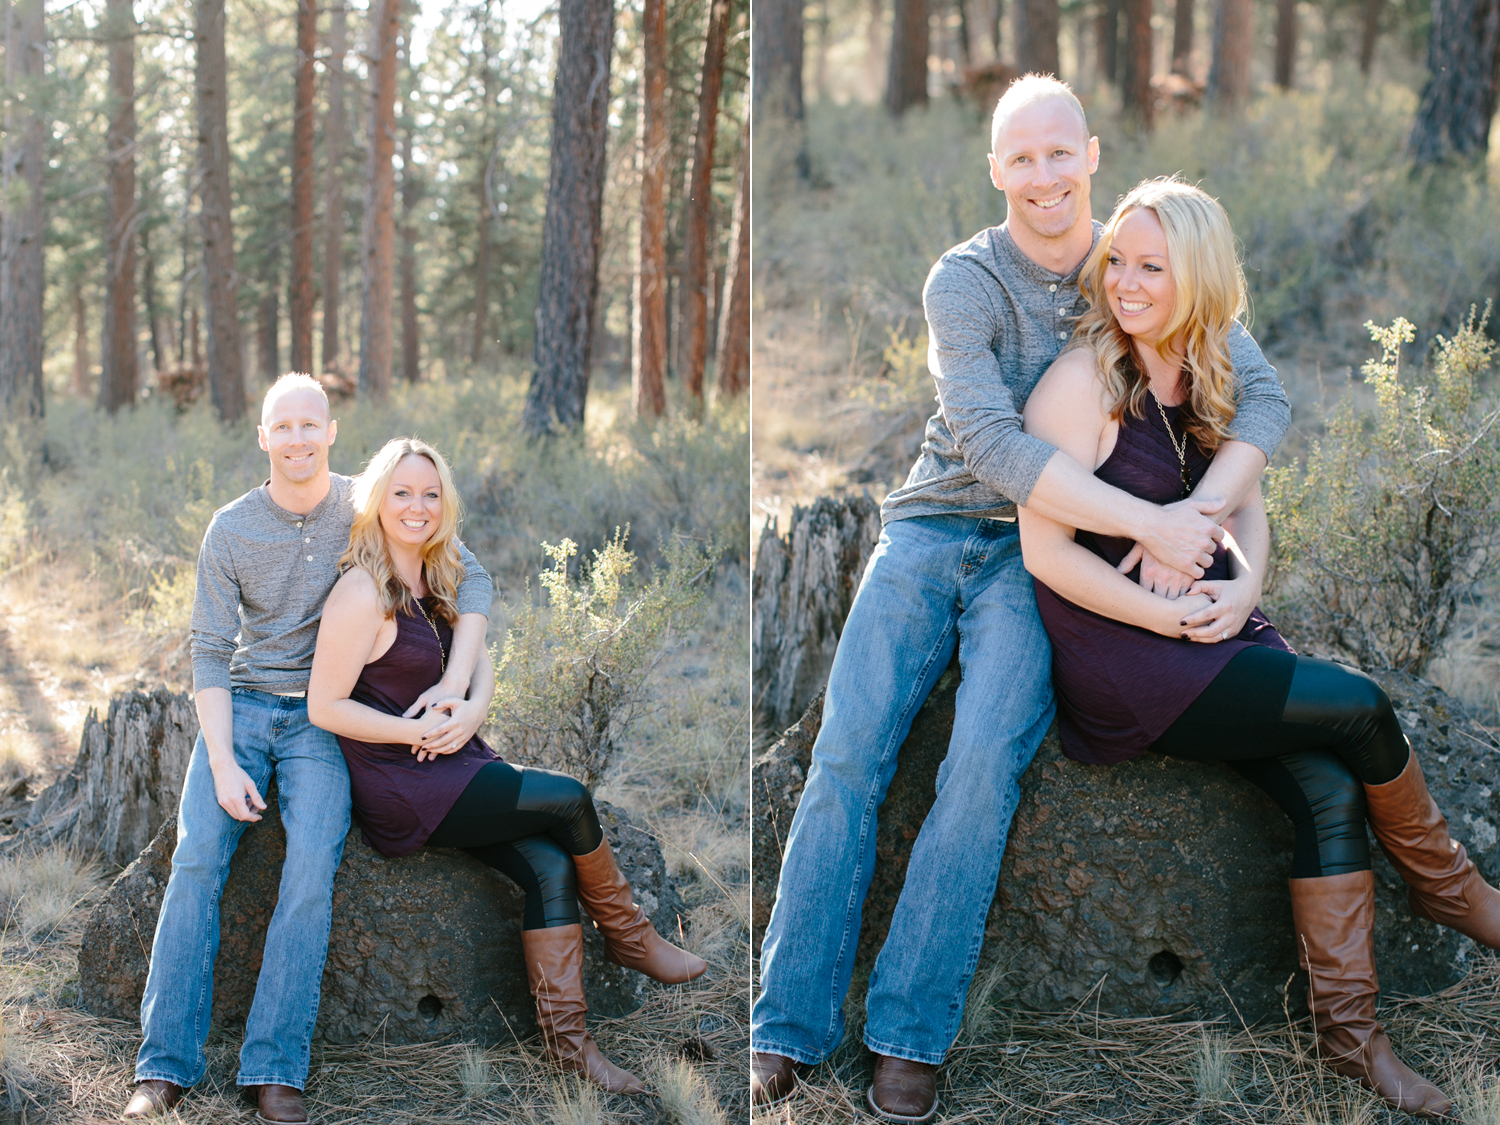 Bend Oregon Engagement by Michelle Cross - 2.jpg